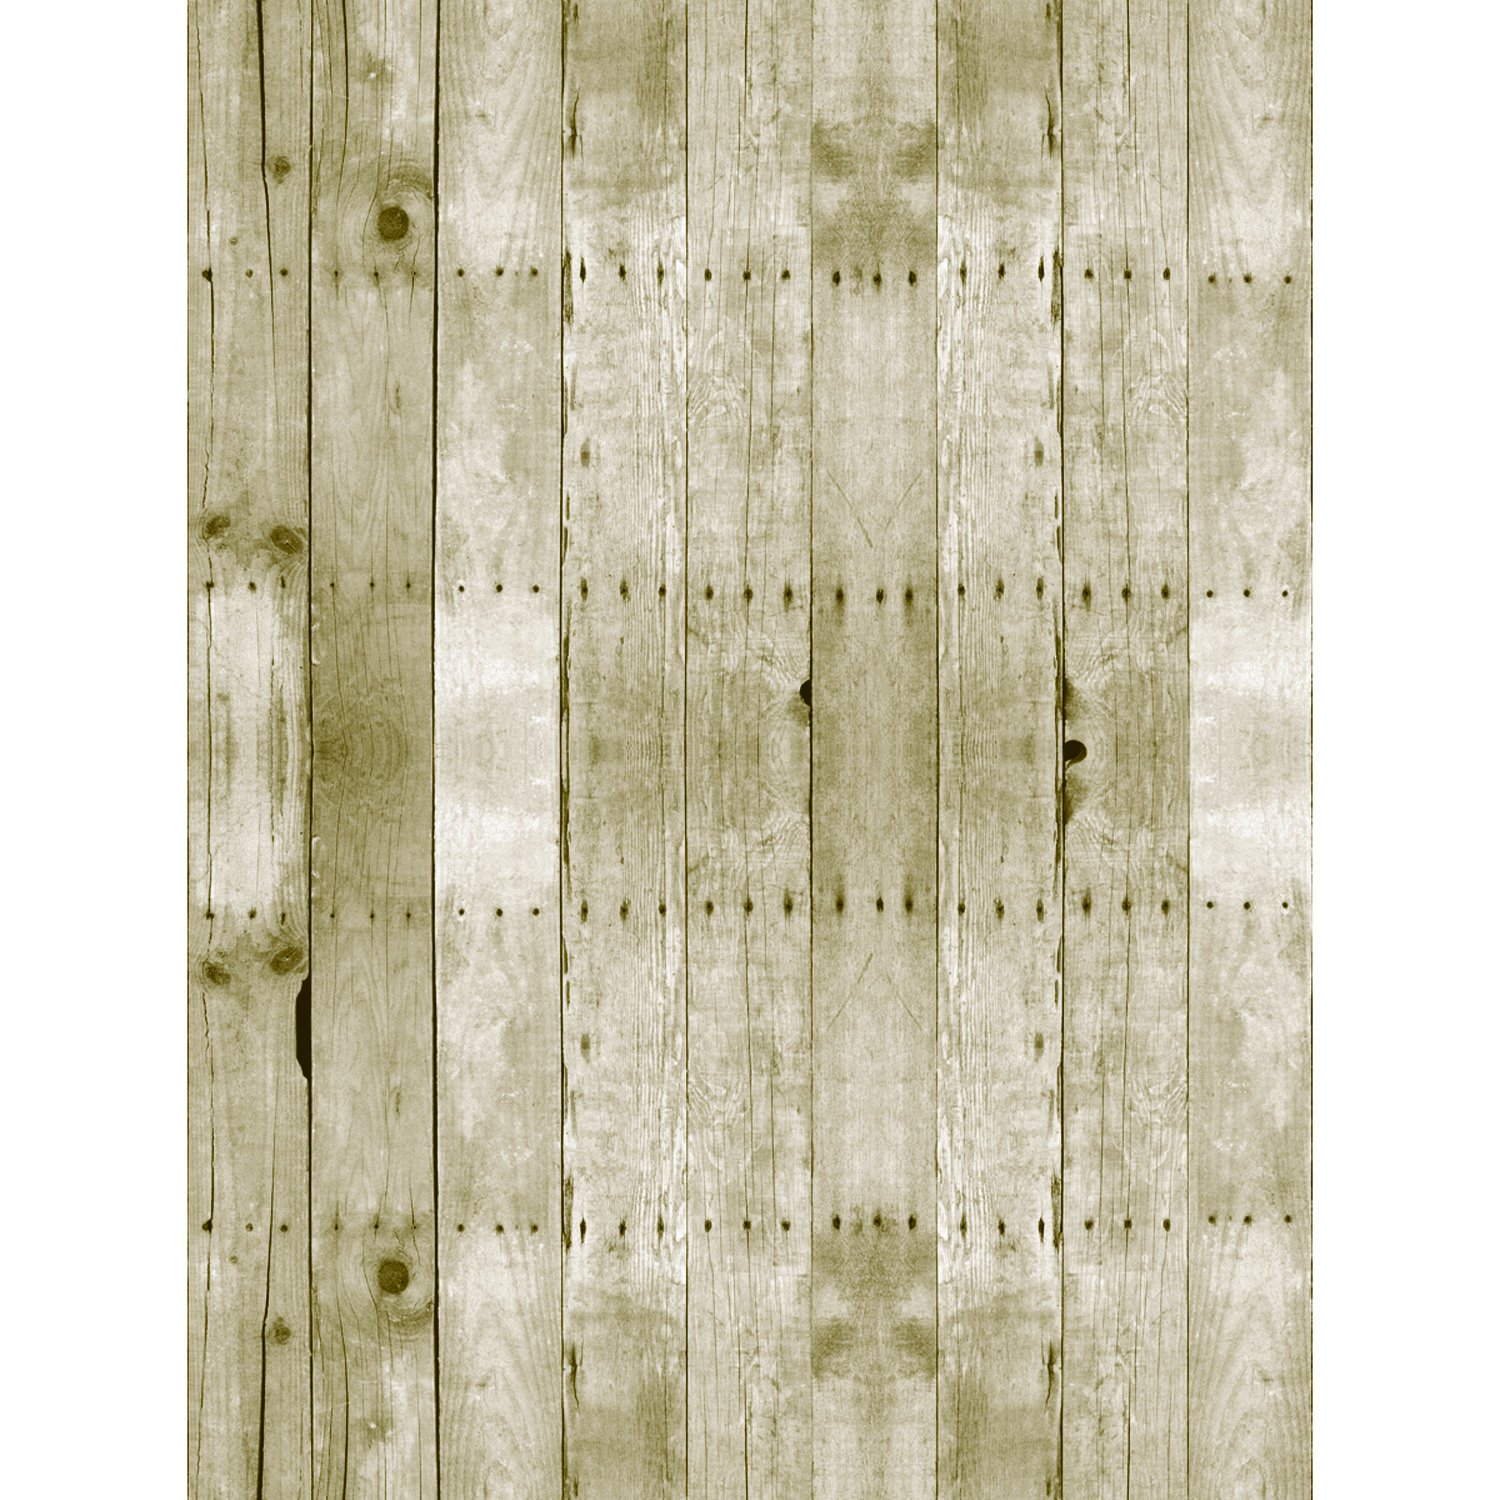 Pacon PAC56518-A1 Fadeless Paper Roll, 48'' Width, 12' Length, Barn Wood (Pack of 4)